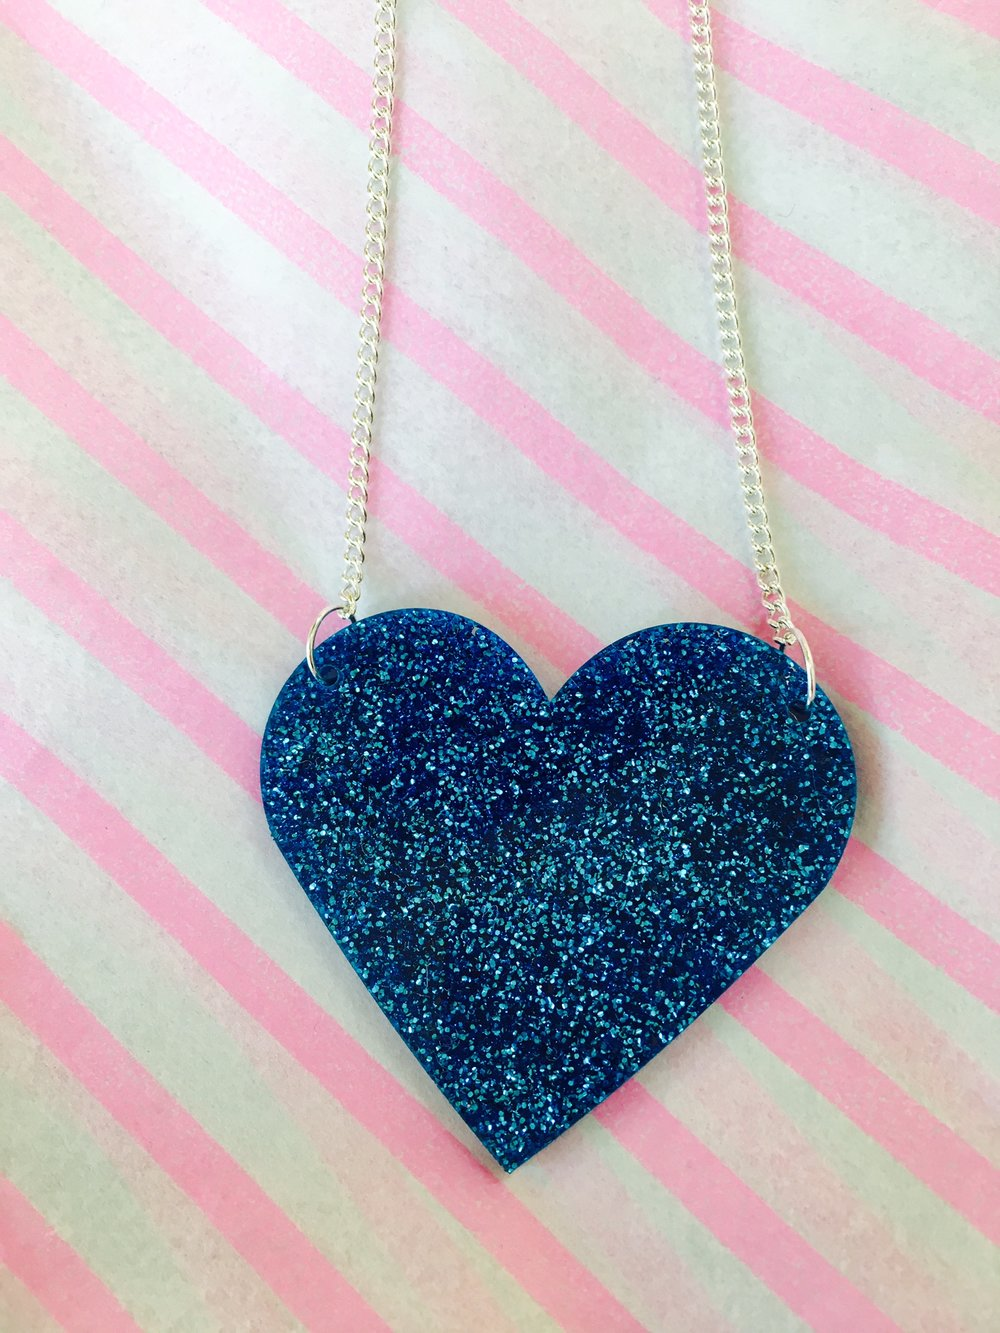 Blue Glitter Acrylic Heart Necklace - Handmade in Hackney, London by From Nic Love // £35 (also available in Red)